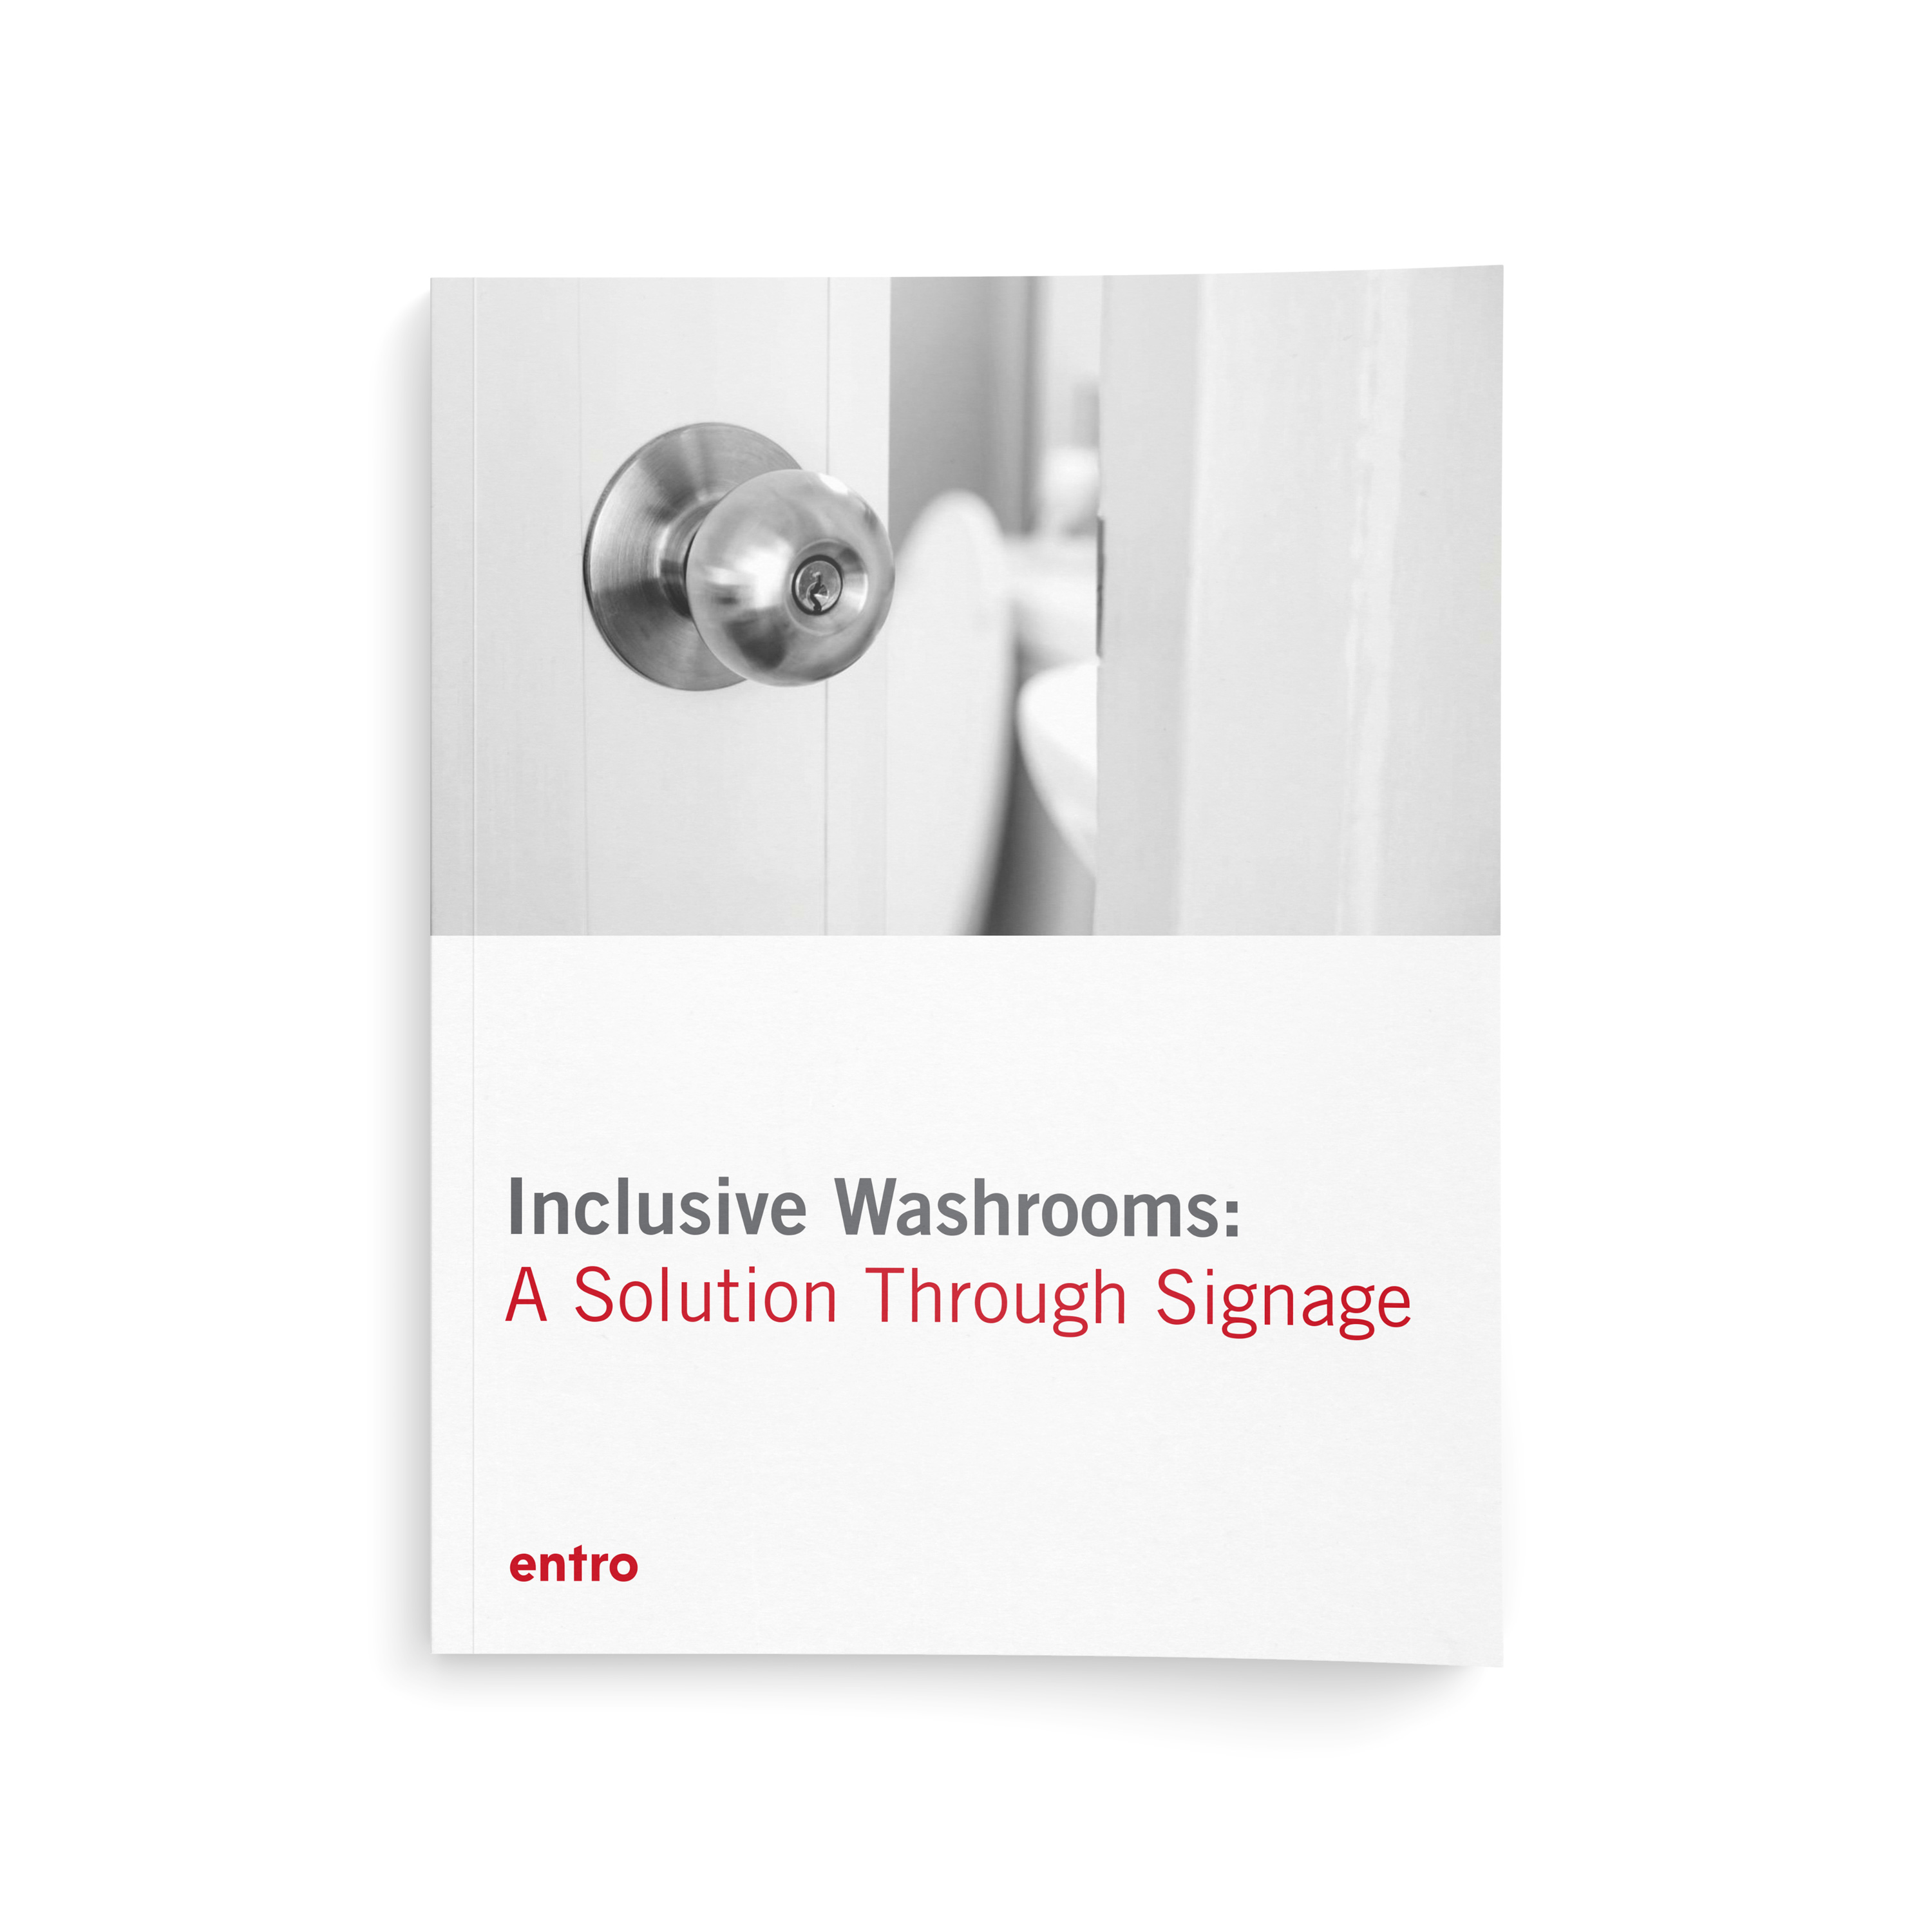 Inclusive Washrooms – A Solution Through Signage